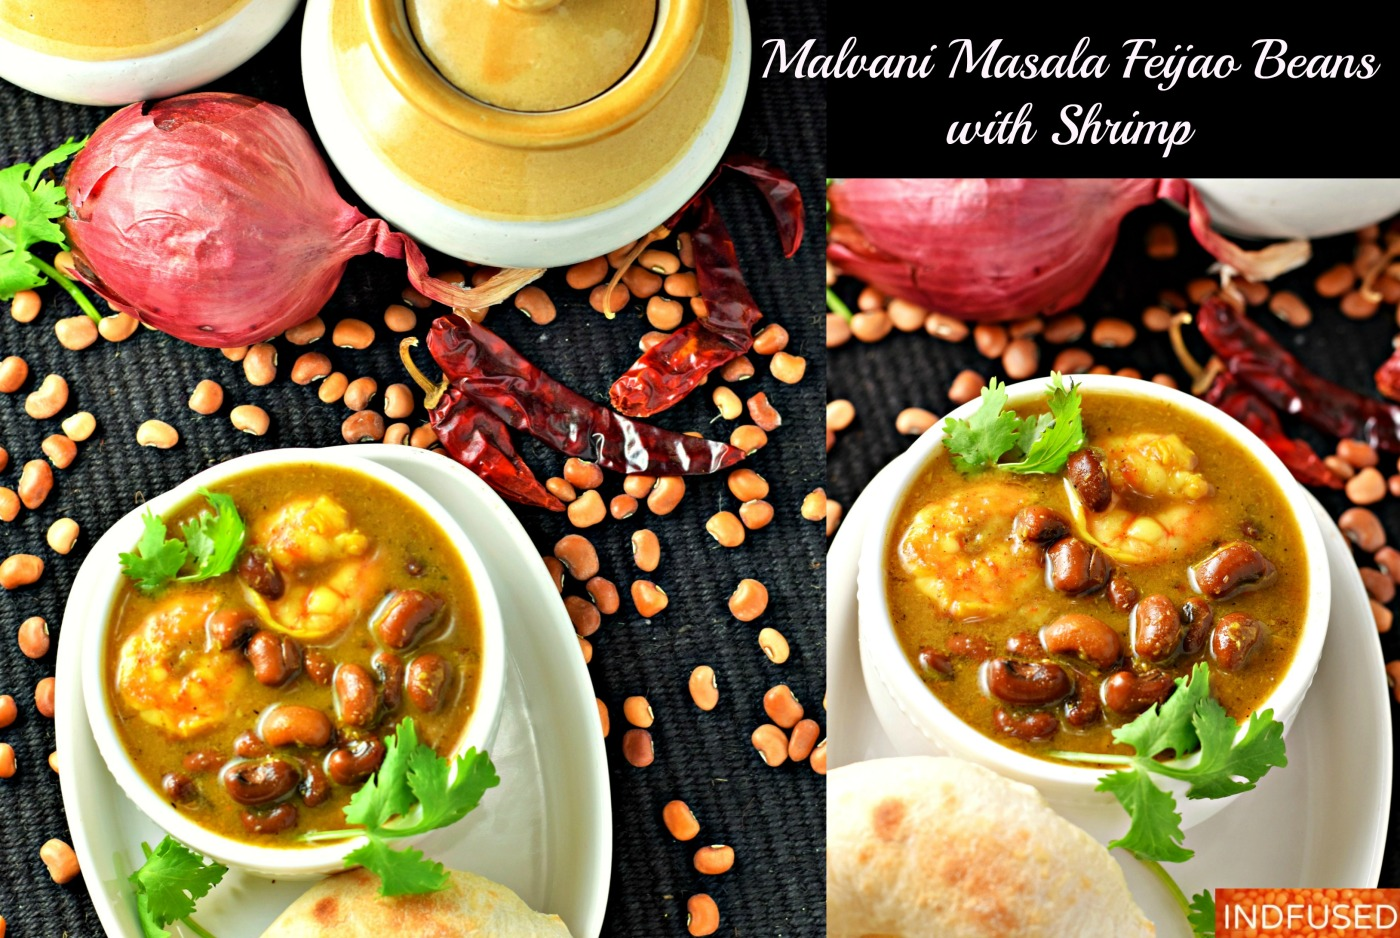 Authentic Indian heirloom recipe for Malvani masala and the feijao curry with shrimp. Serves 6. easy step by step recipe.